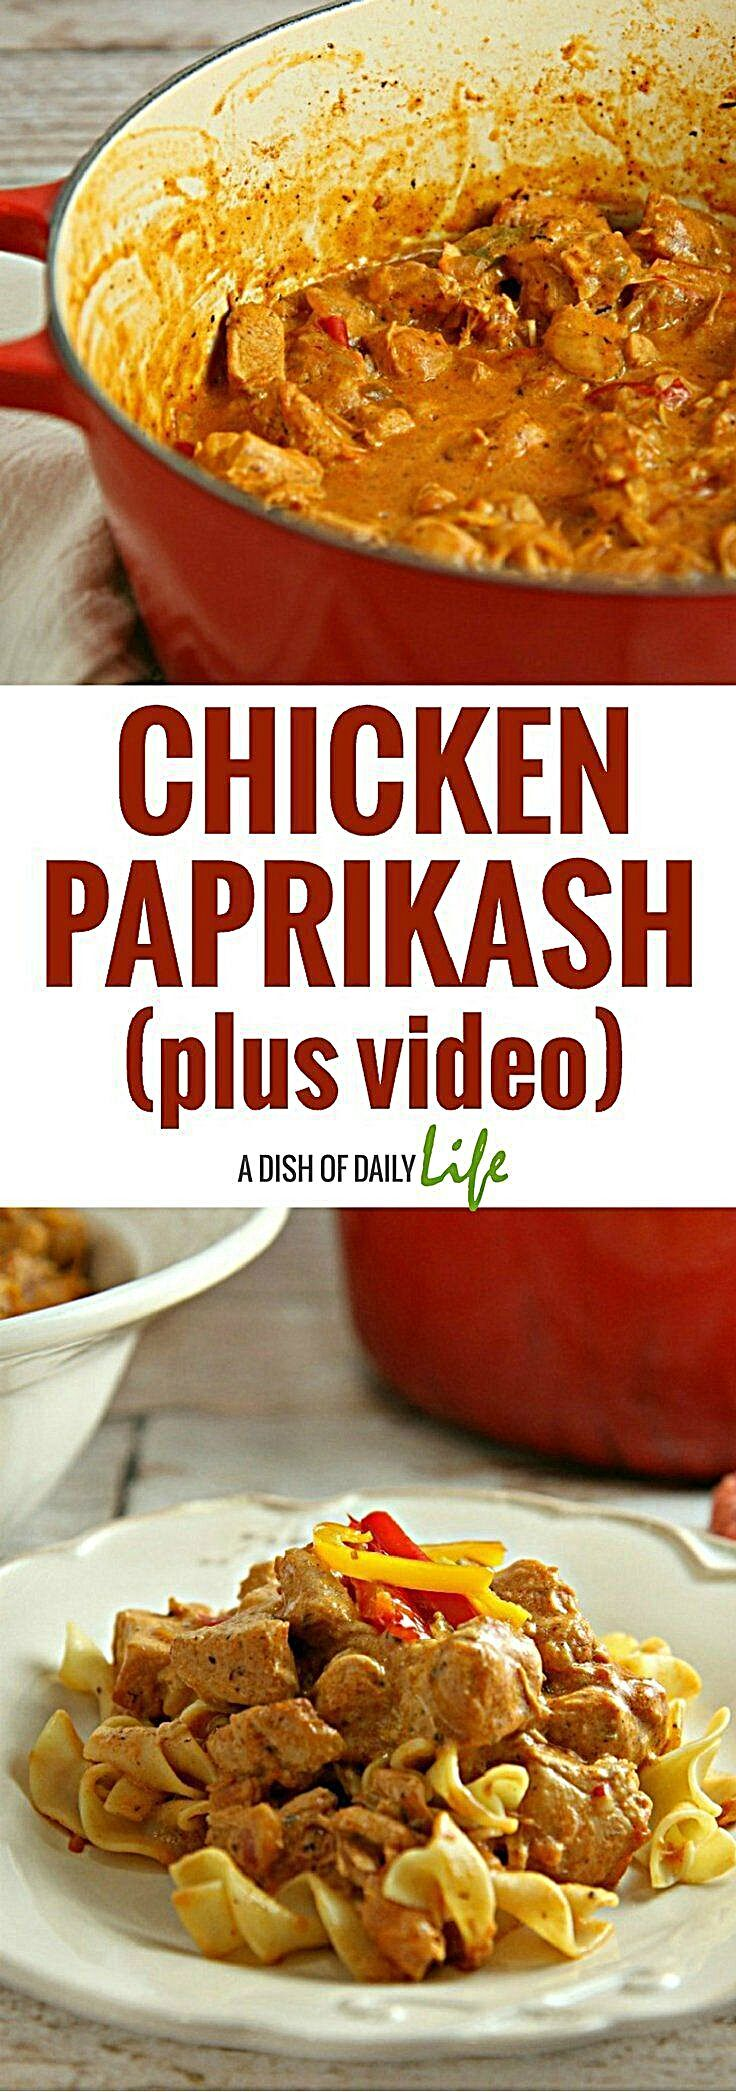 Creamy and delicious, this Hungarian Chicken Paprikash recipe is an easy comfort food dish with a mi...